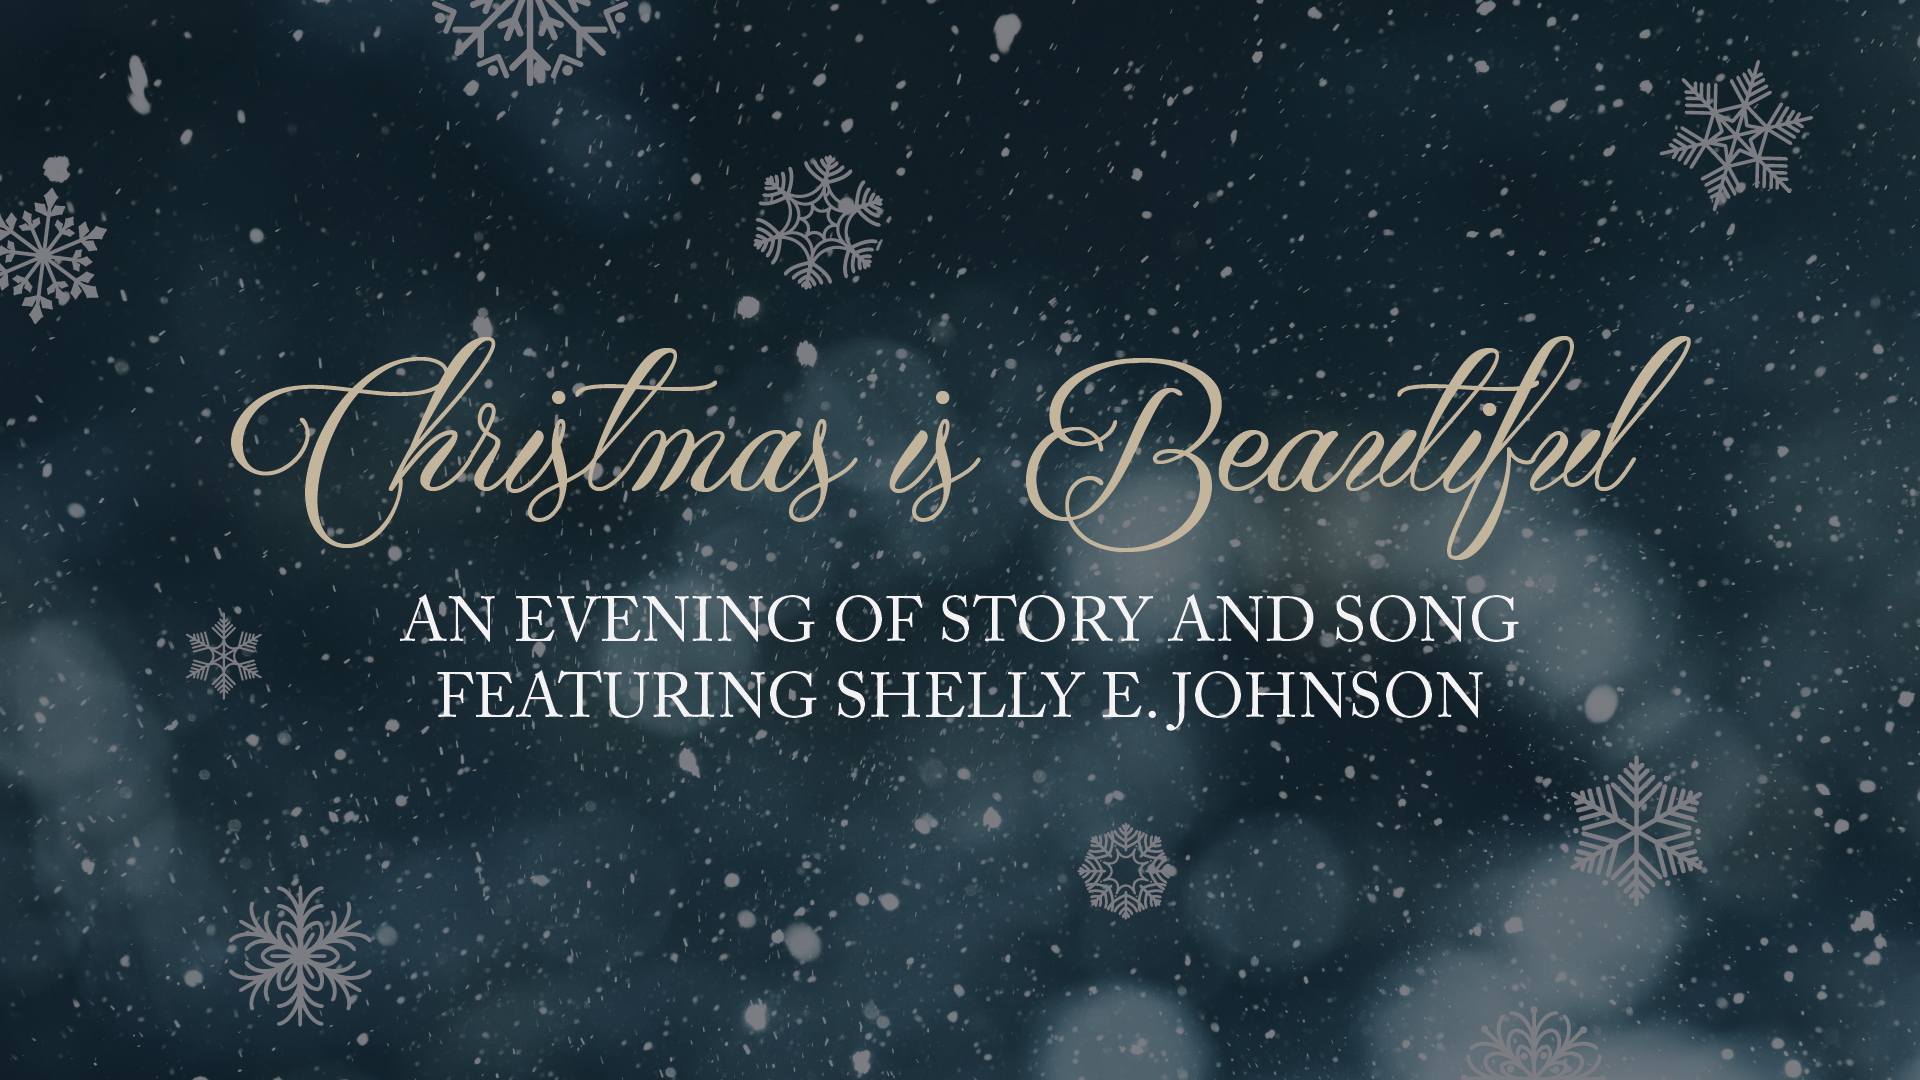 Christmas is Beautiful: An Evening of Story and Song